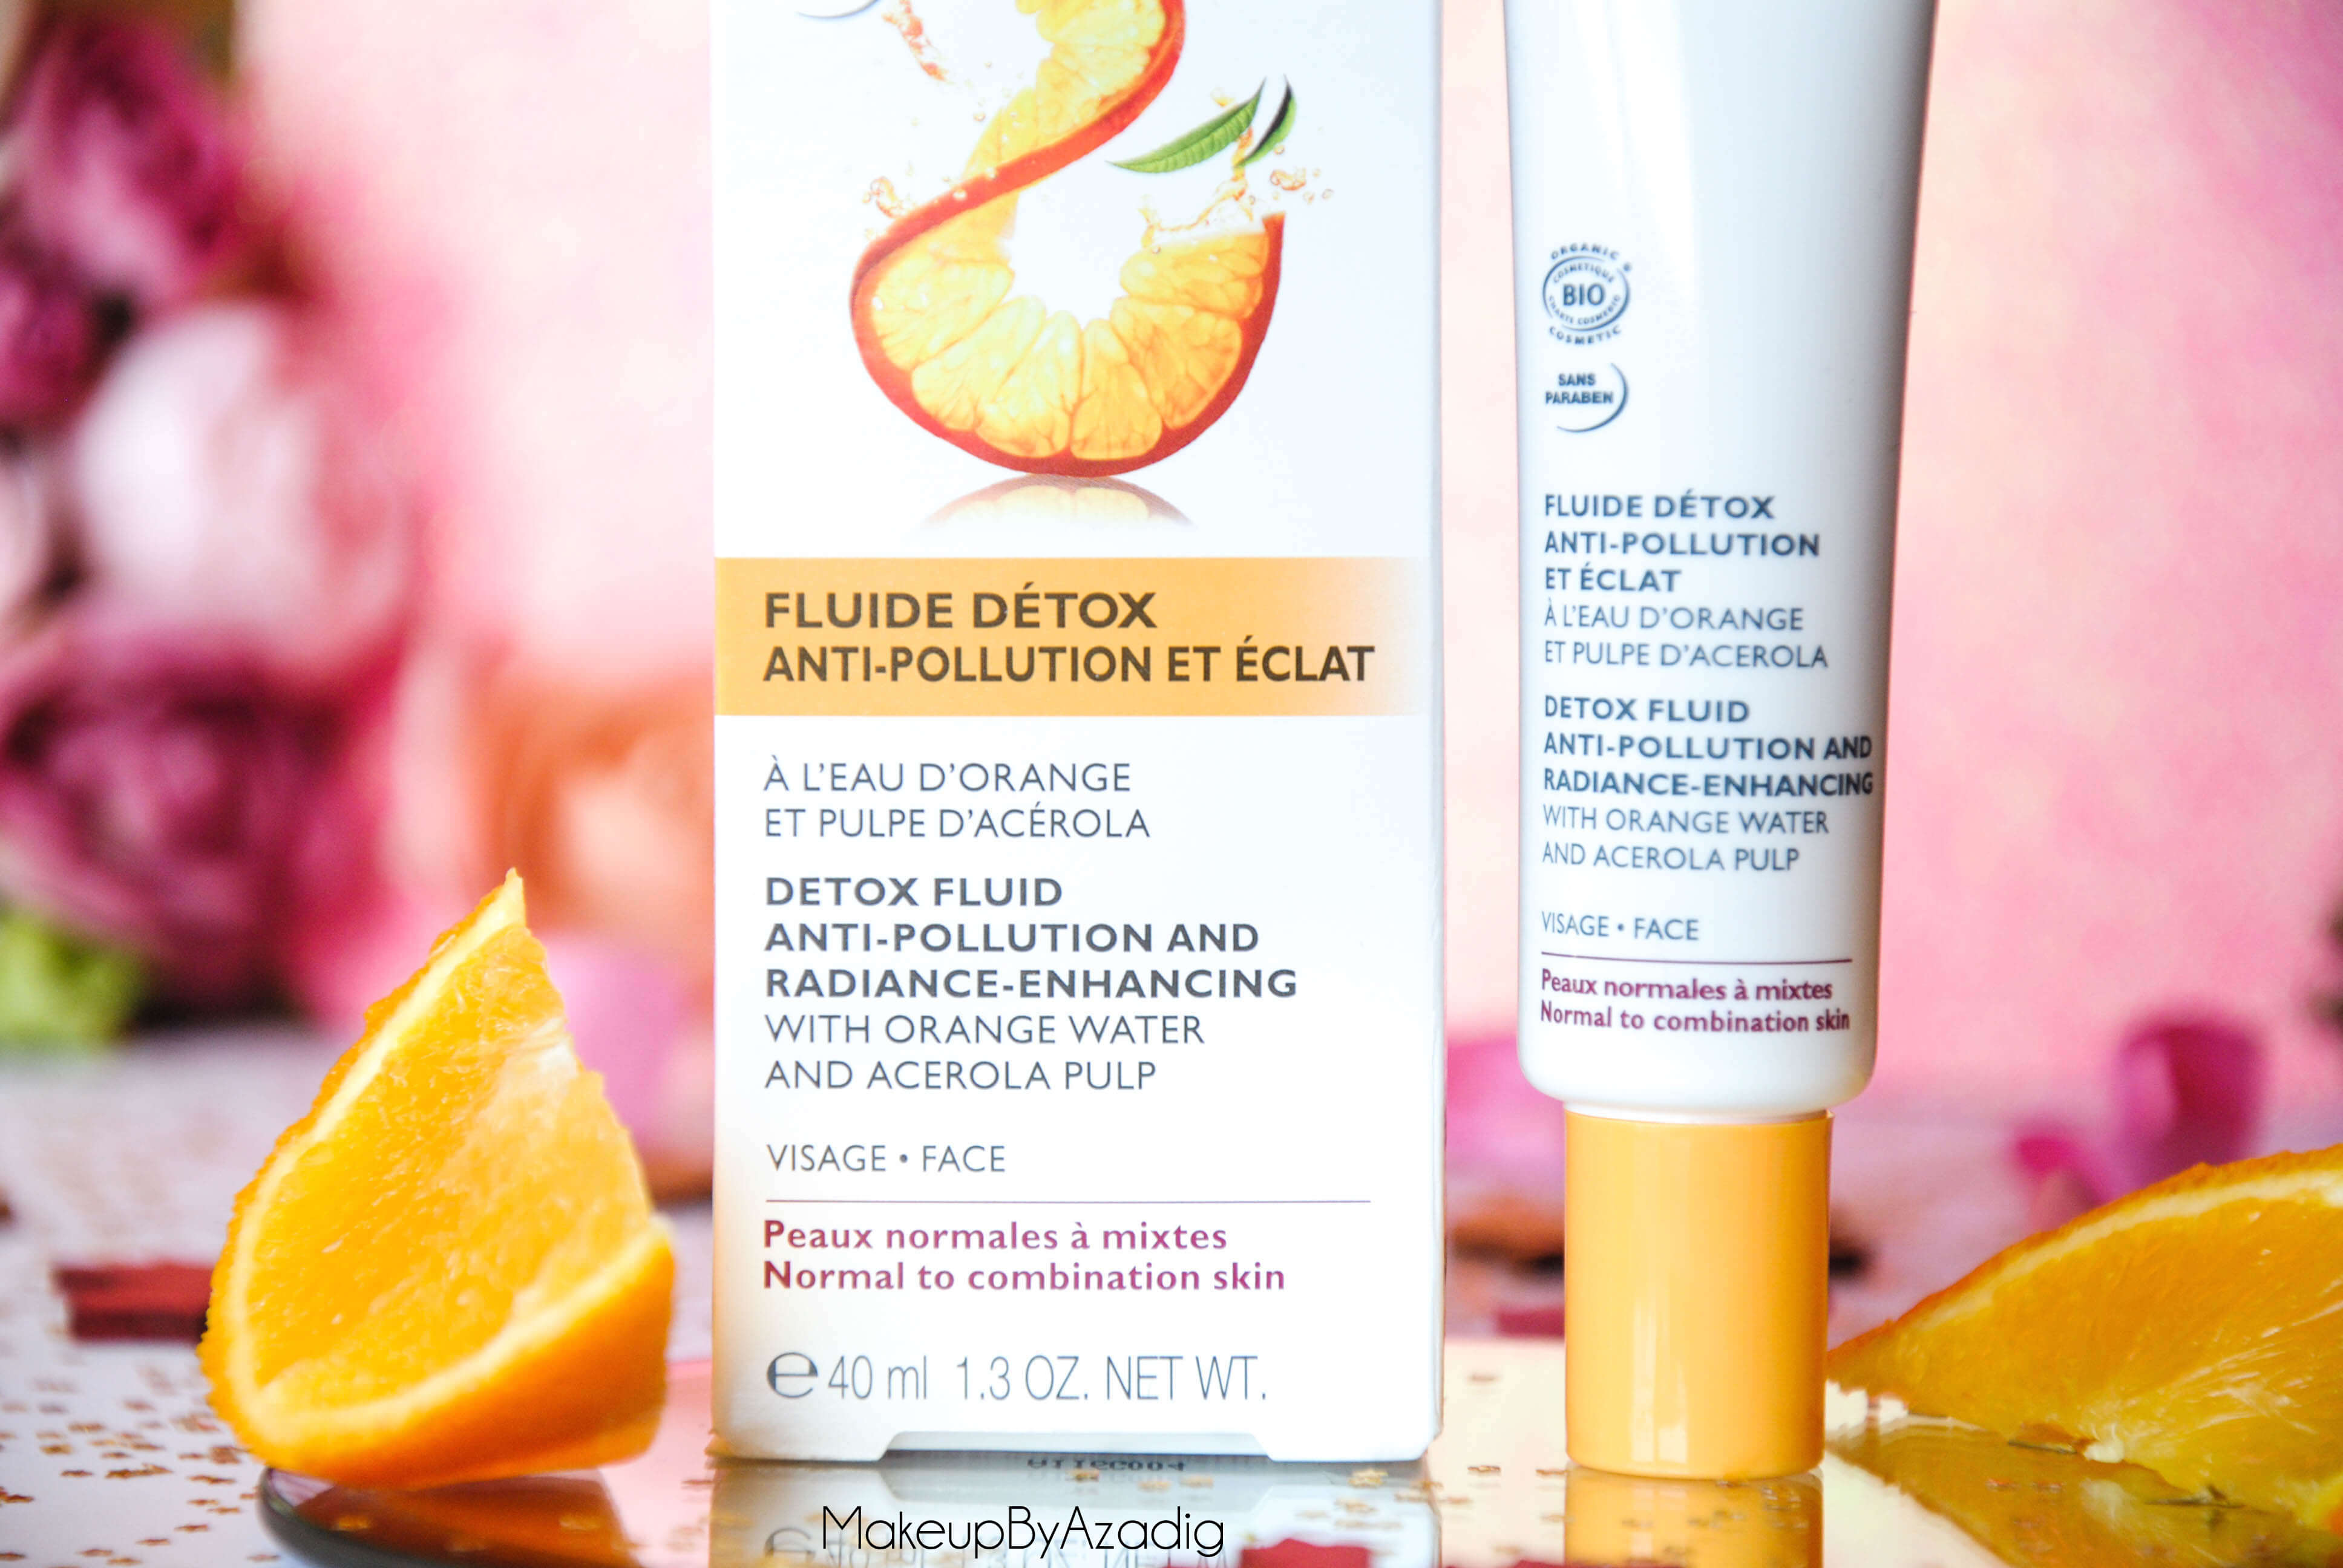 bio-beaute-nuxe-lotion-fluide-creme-contour-des-yeux-masque-orange-acerola-doctipharma-routine-du-matin-detox-eclat-soin-troyes-paris-makeupbyazadig-blog-revue-review-anti-pollution-monoprix